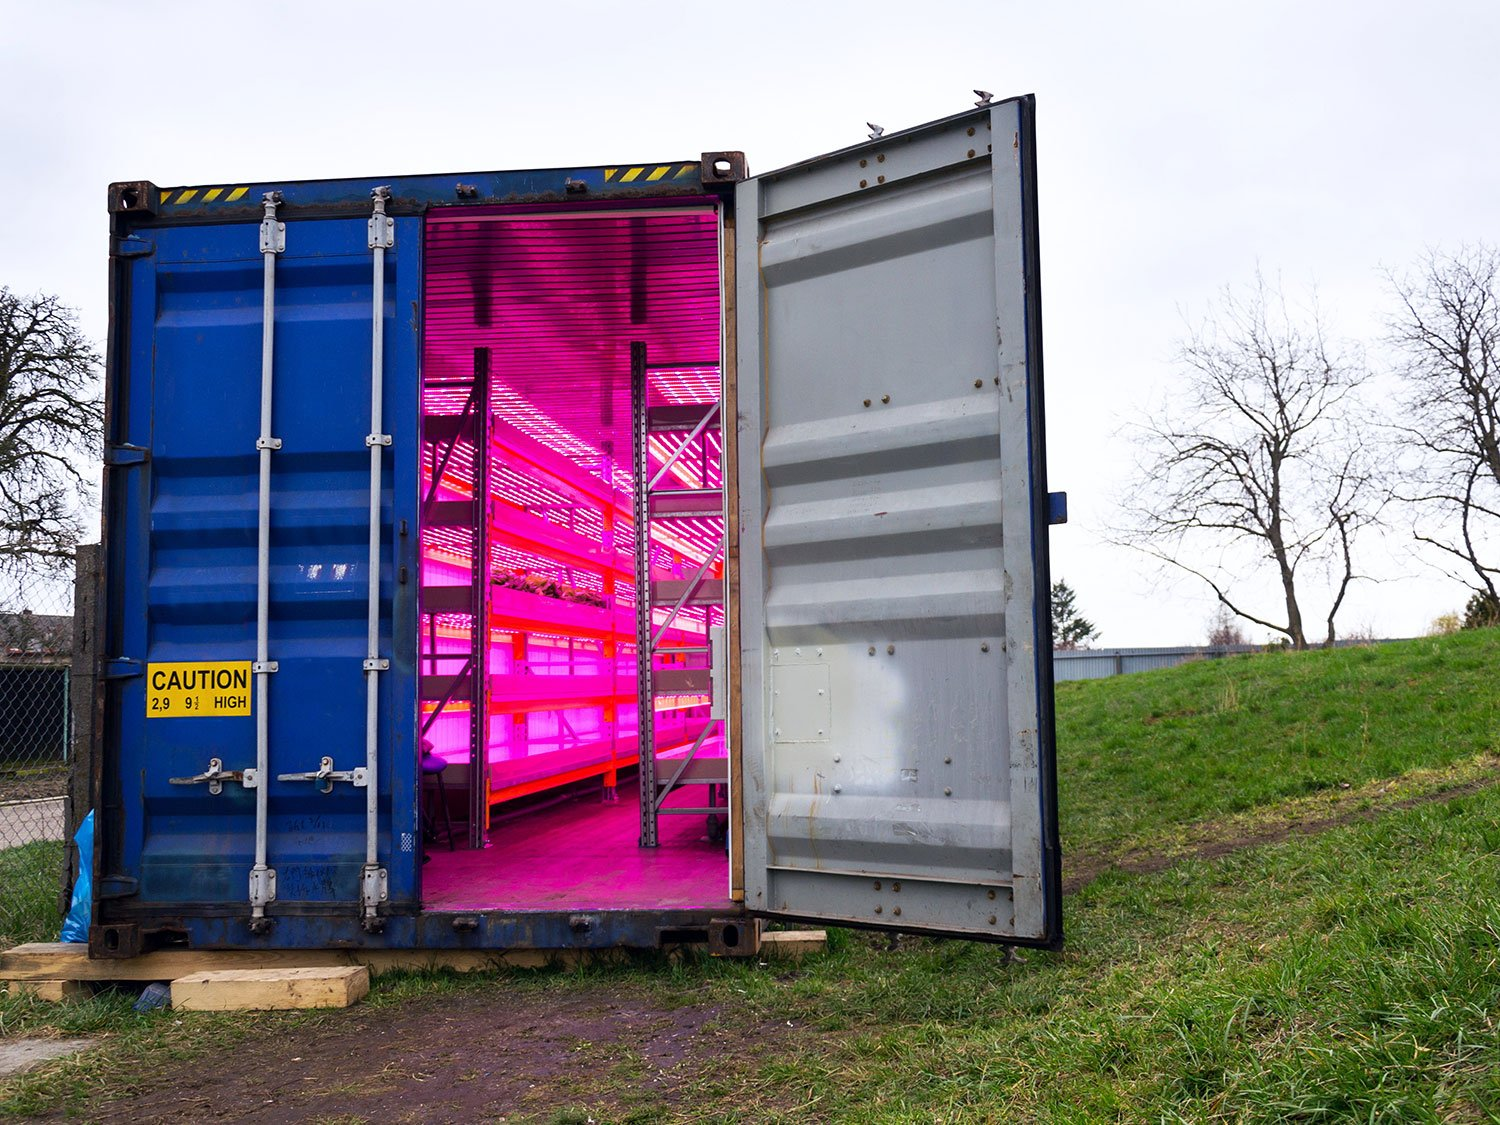 SHIPPING CONTAINER FARMS: A NEW TYPE OF AGRICULTURE?